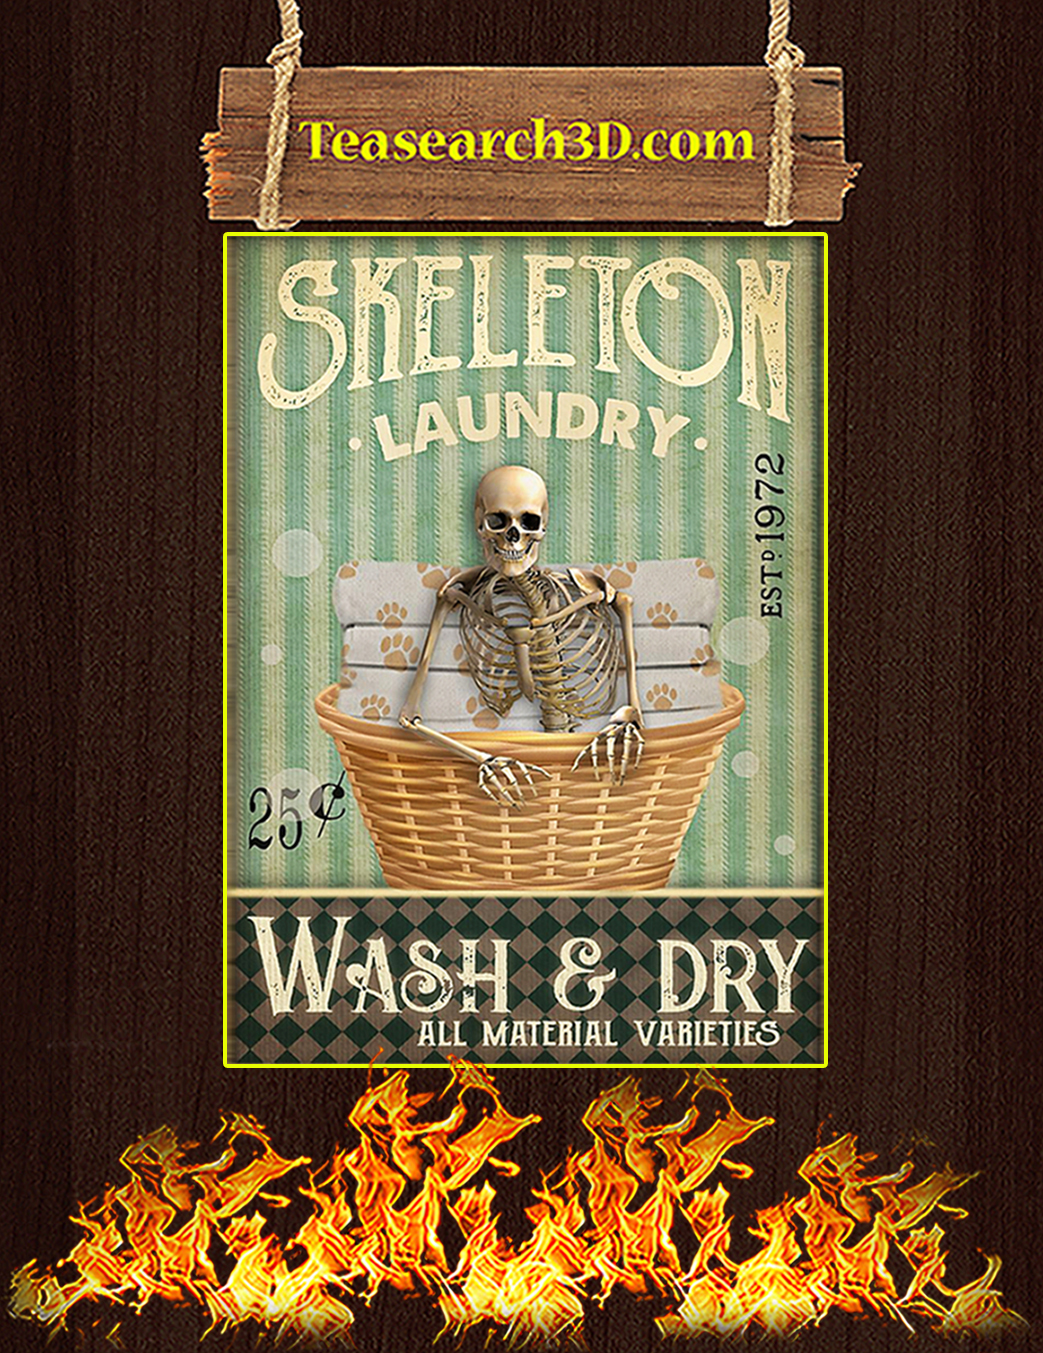 Skeleton laundry wash and dry poster A1